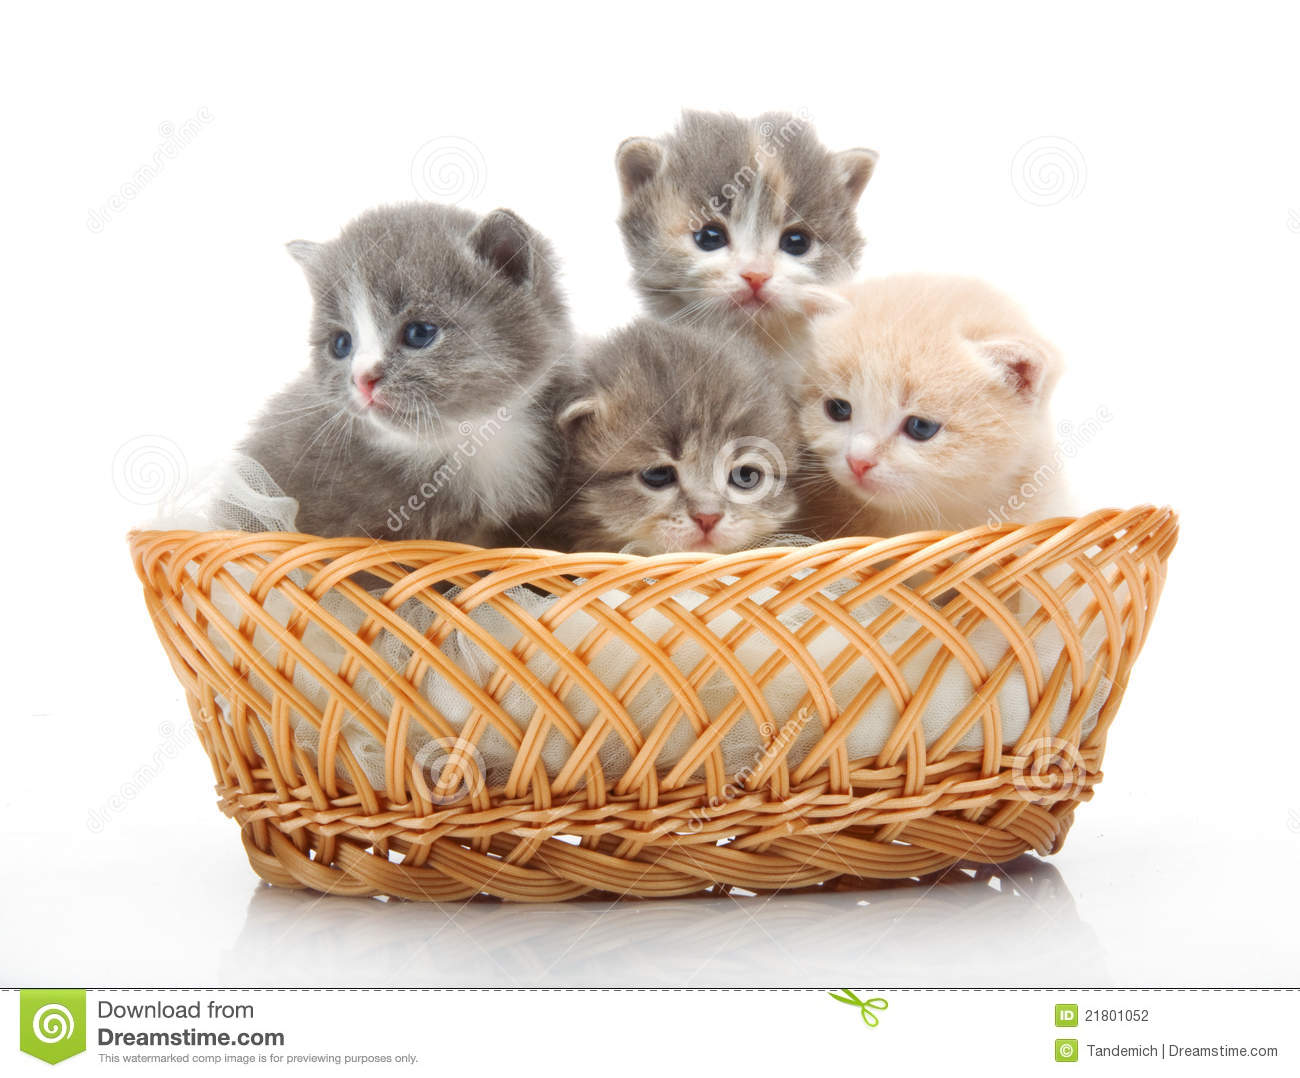 Cat Basket Clipart : Small cute kittens sitting in a basket close up stock